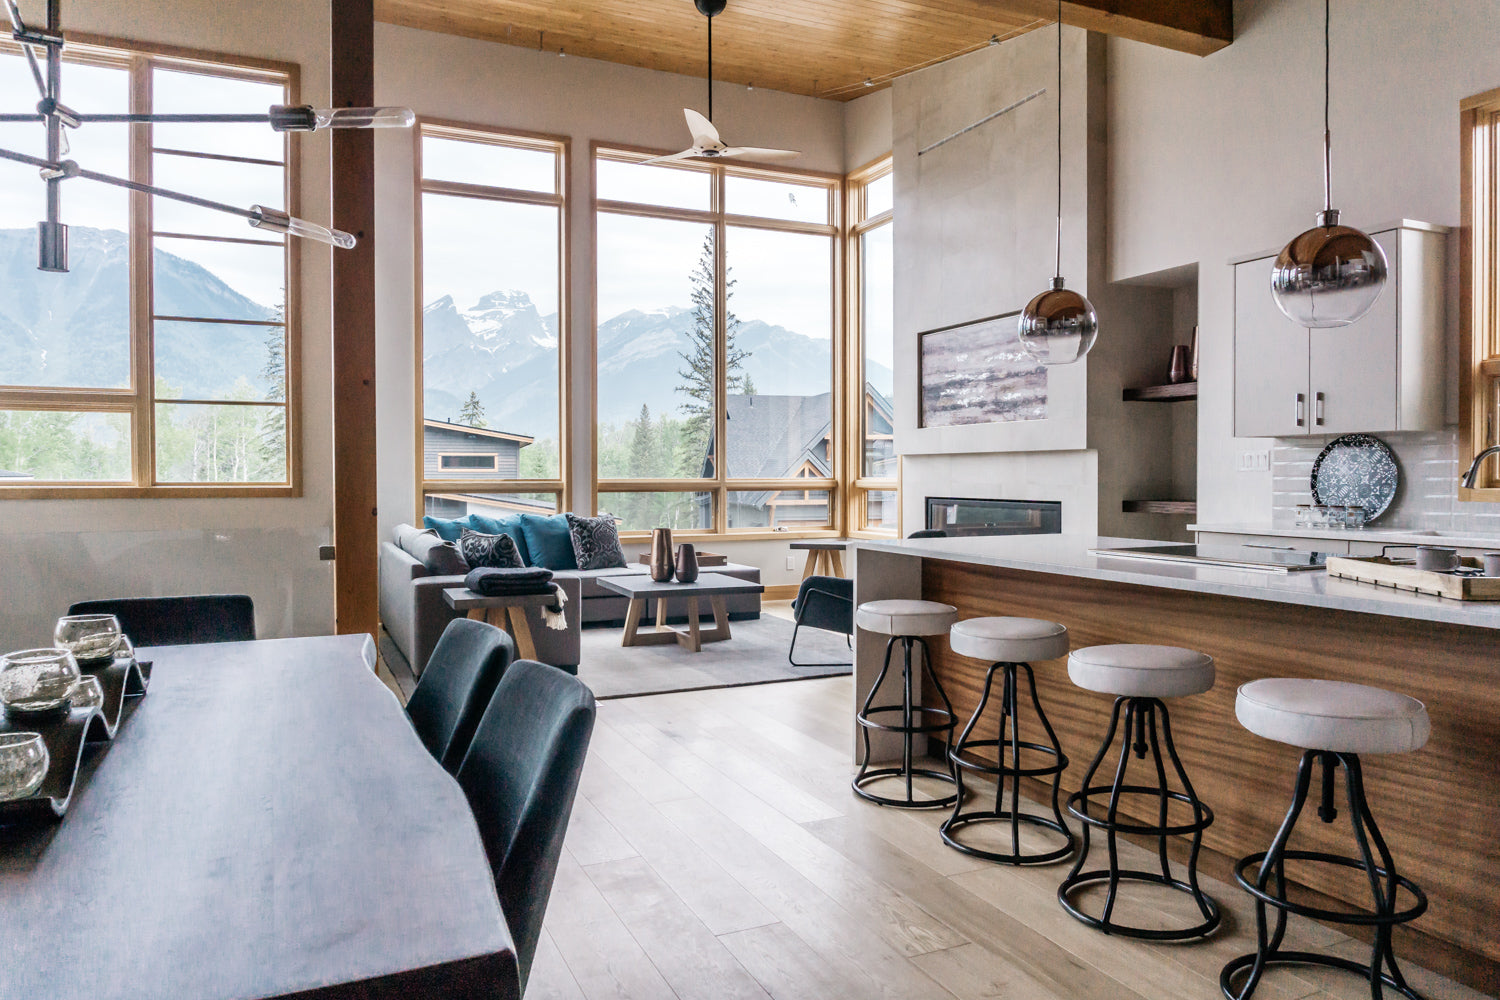 Great room interior design project of Montane home in Fernie Elk Valley BC